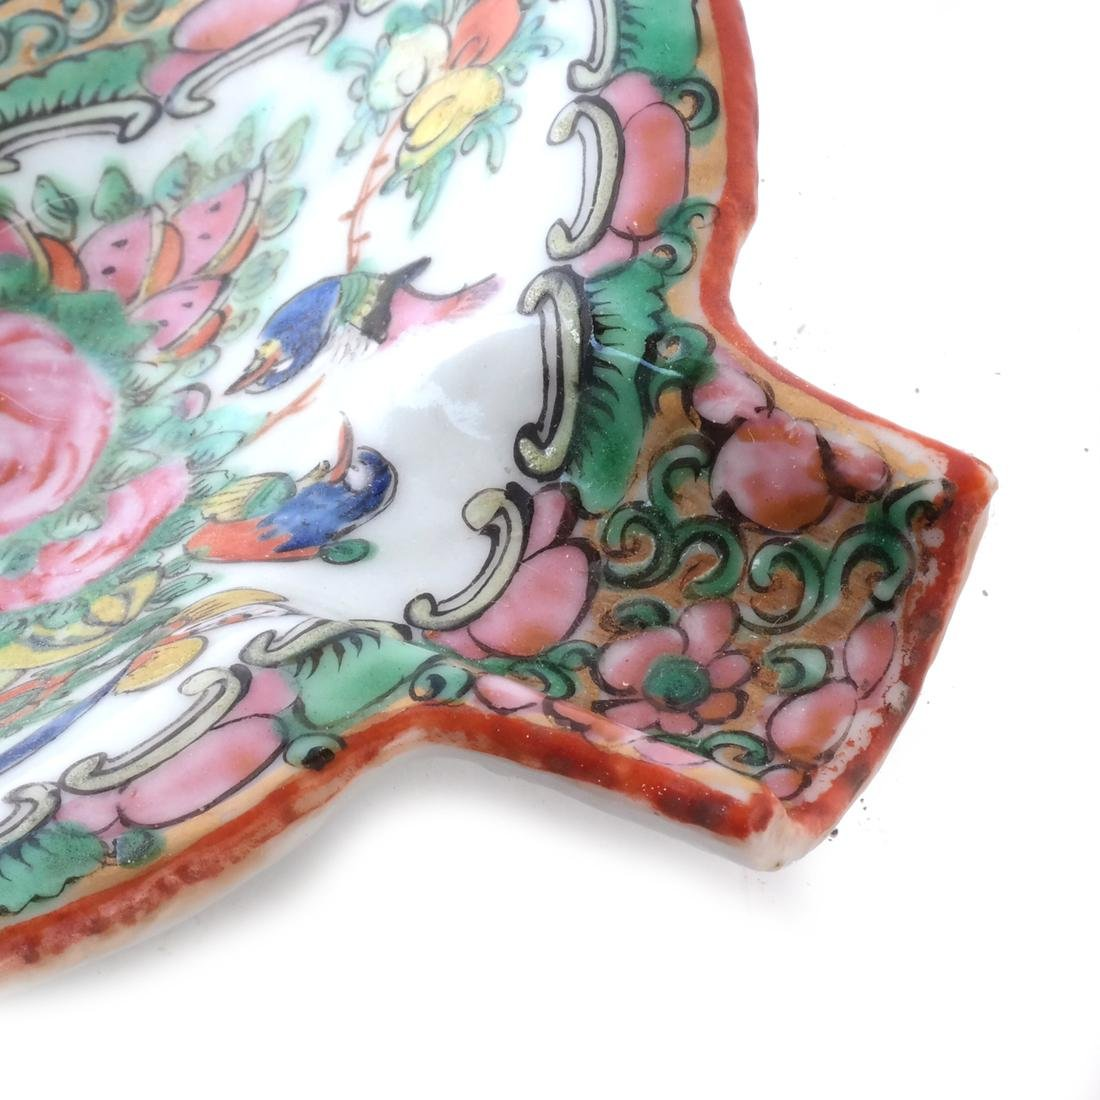 Chinese Export Porcelain Dish - 3